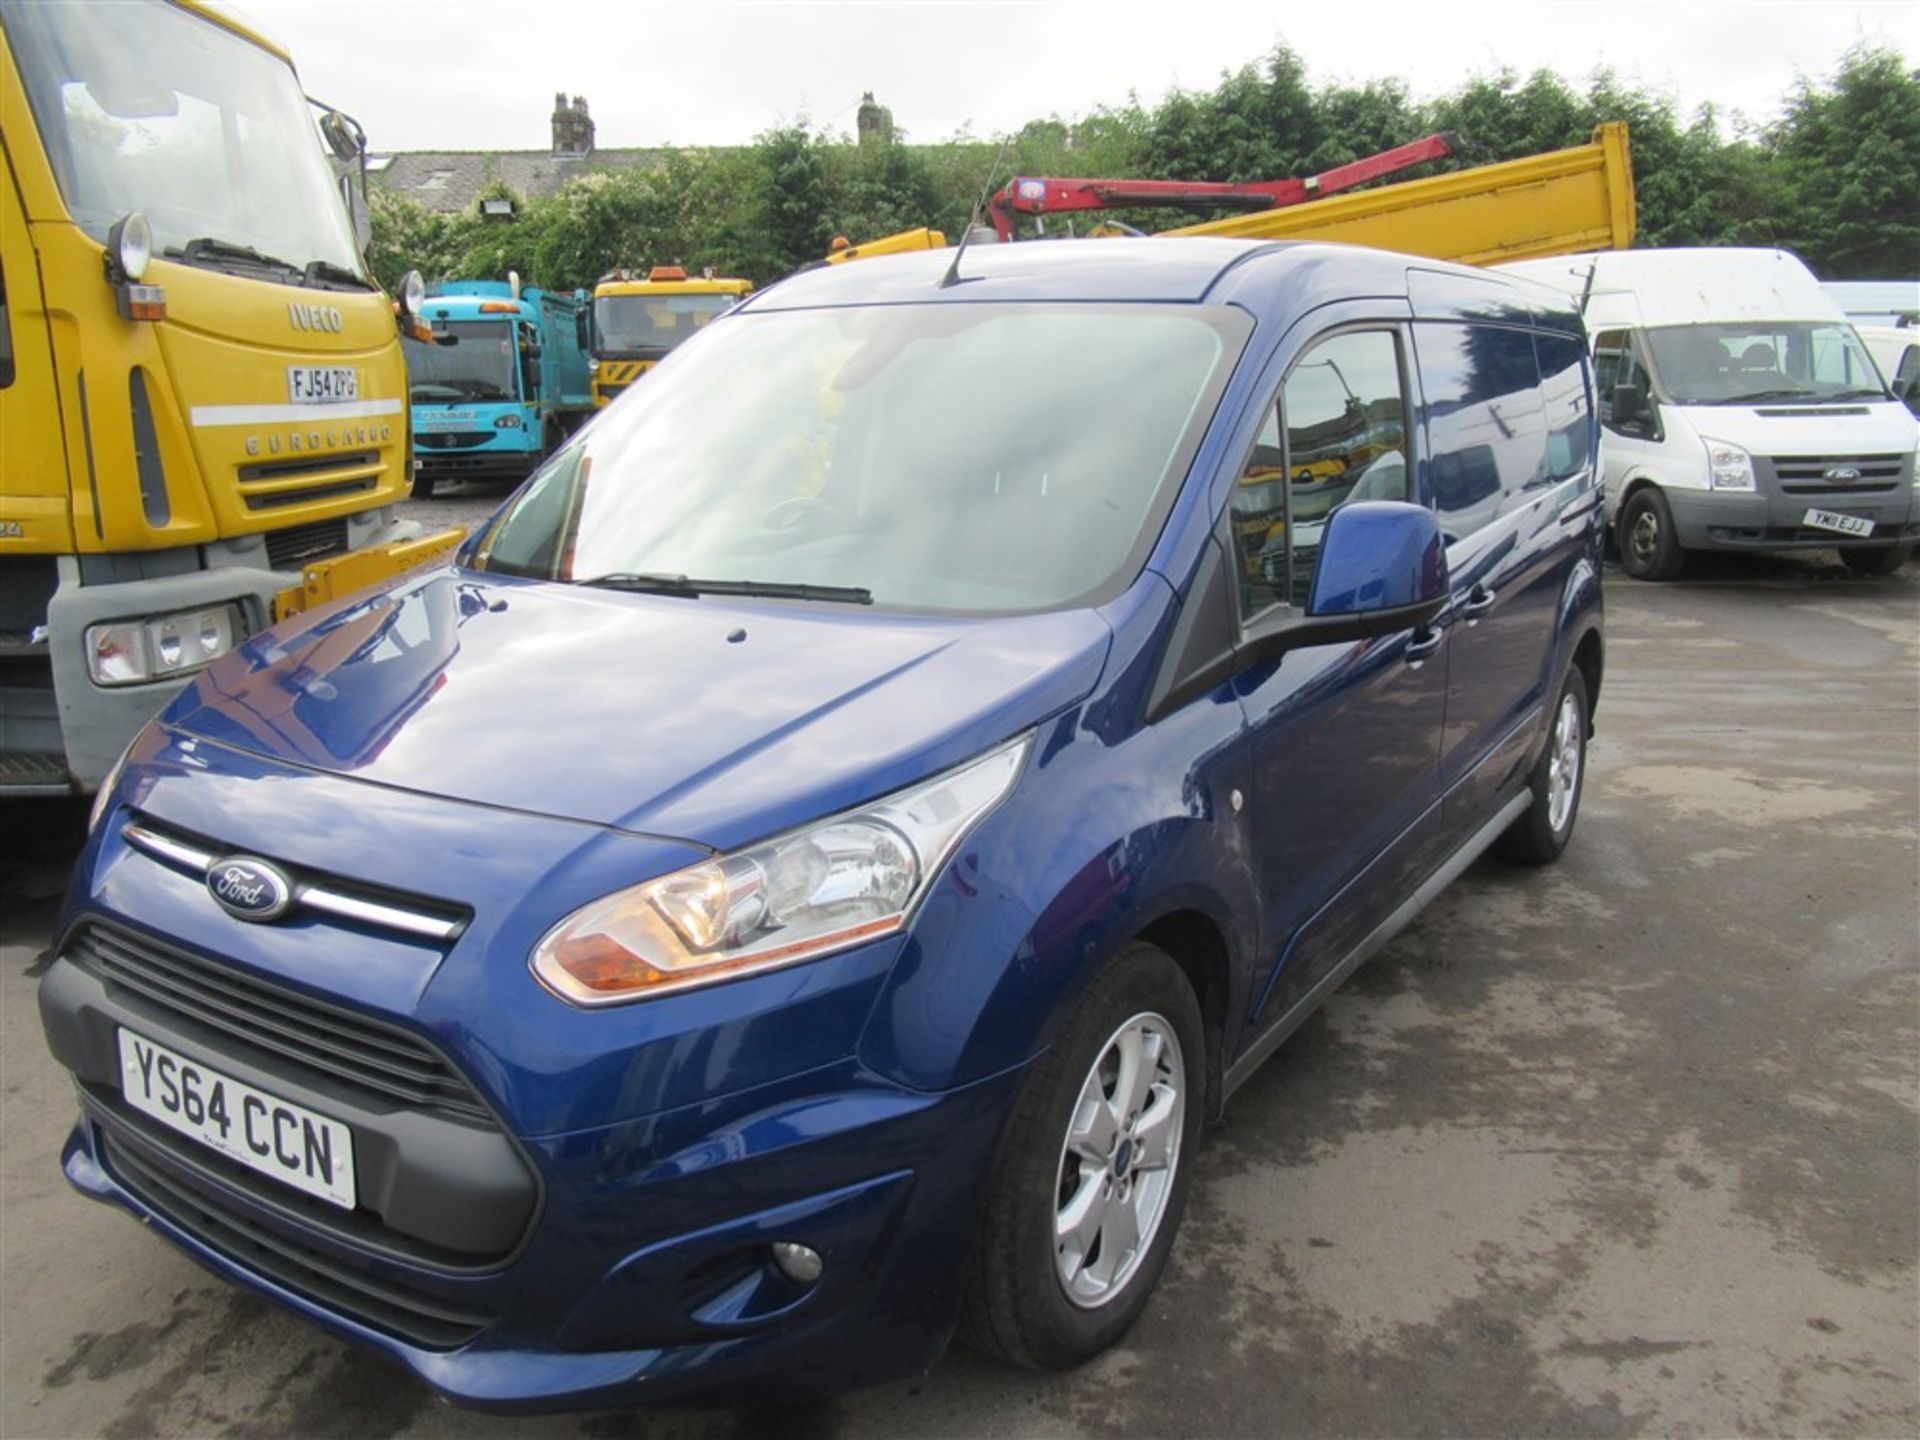 64 reg FORD TRANSIT CONNECT 240 LIMITED, 1ST REG 12/14, 128144M WARRANTED, V5 HERE, 1 OWNER FROM NEW - Image 2 of 7